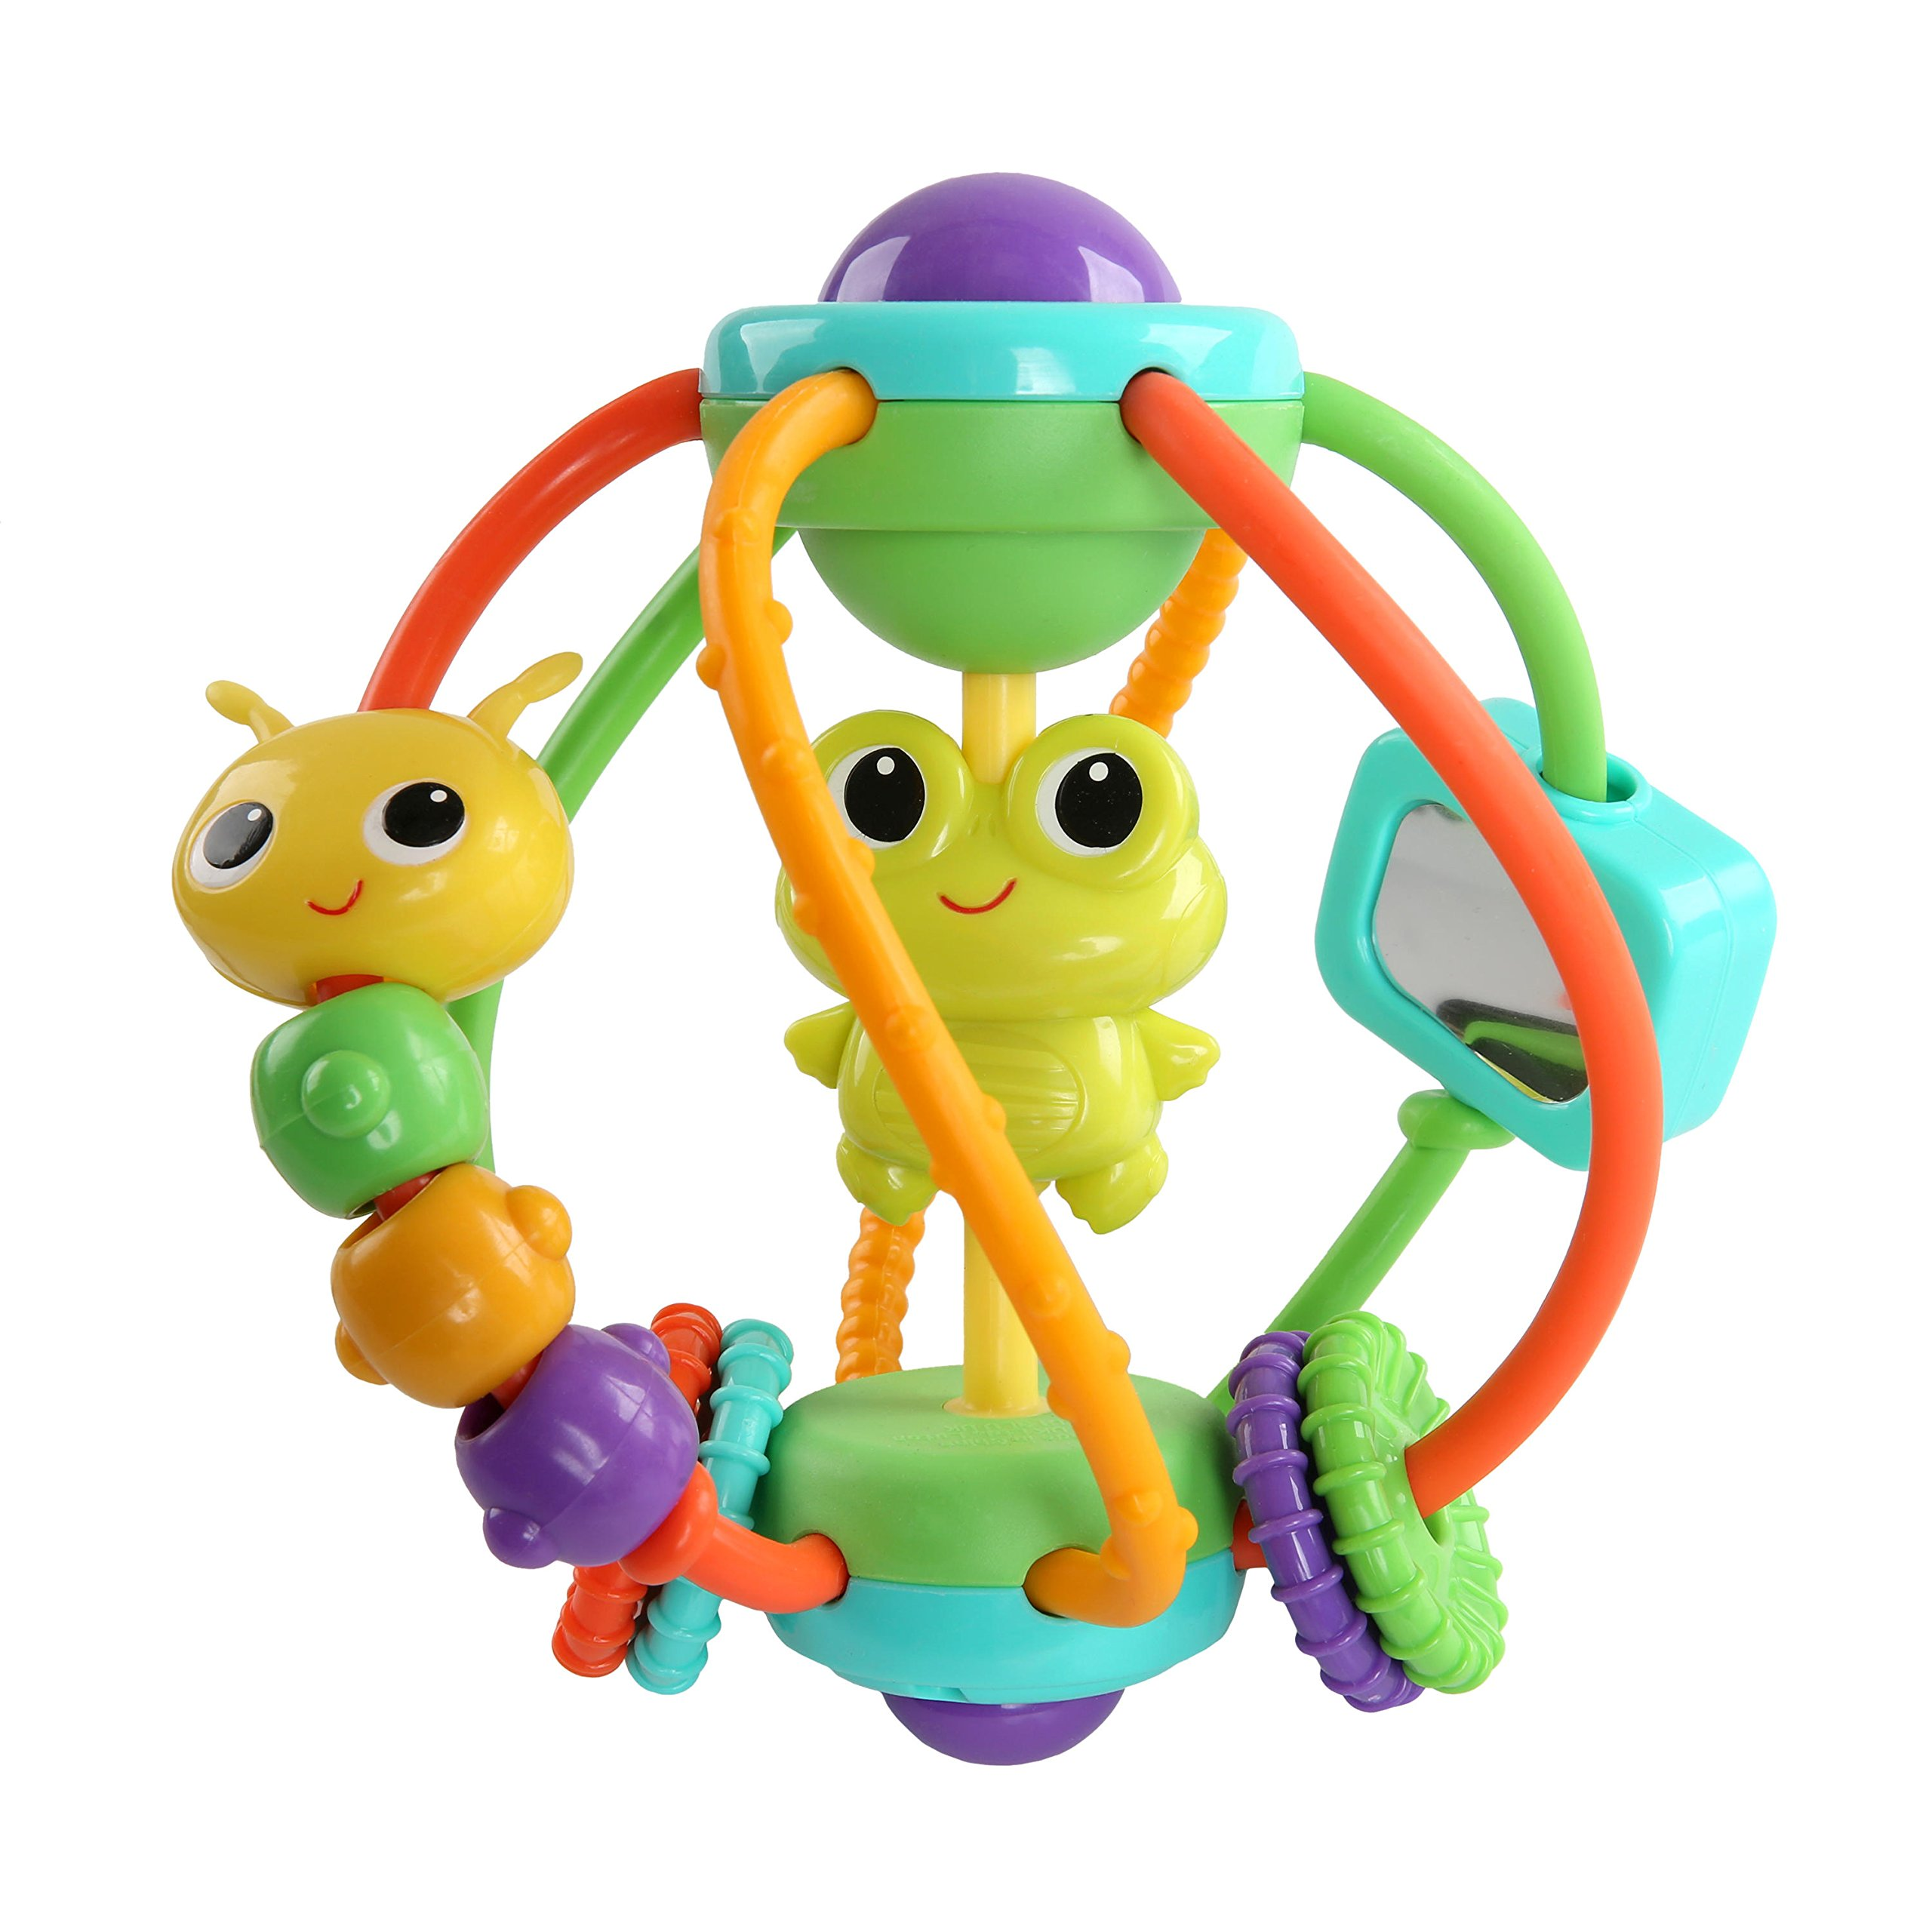 Bright Starts Clack and Slide Activity Ball by Bright Starts